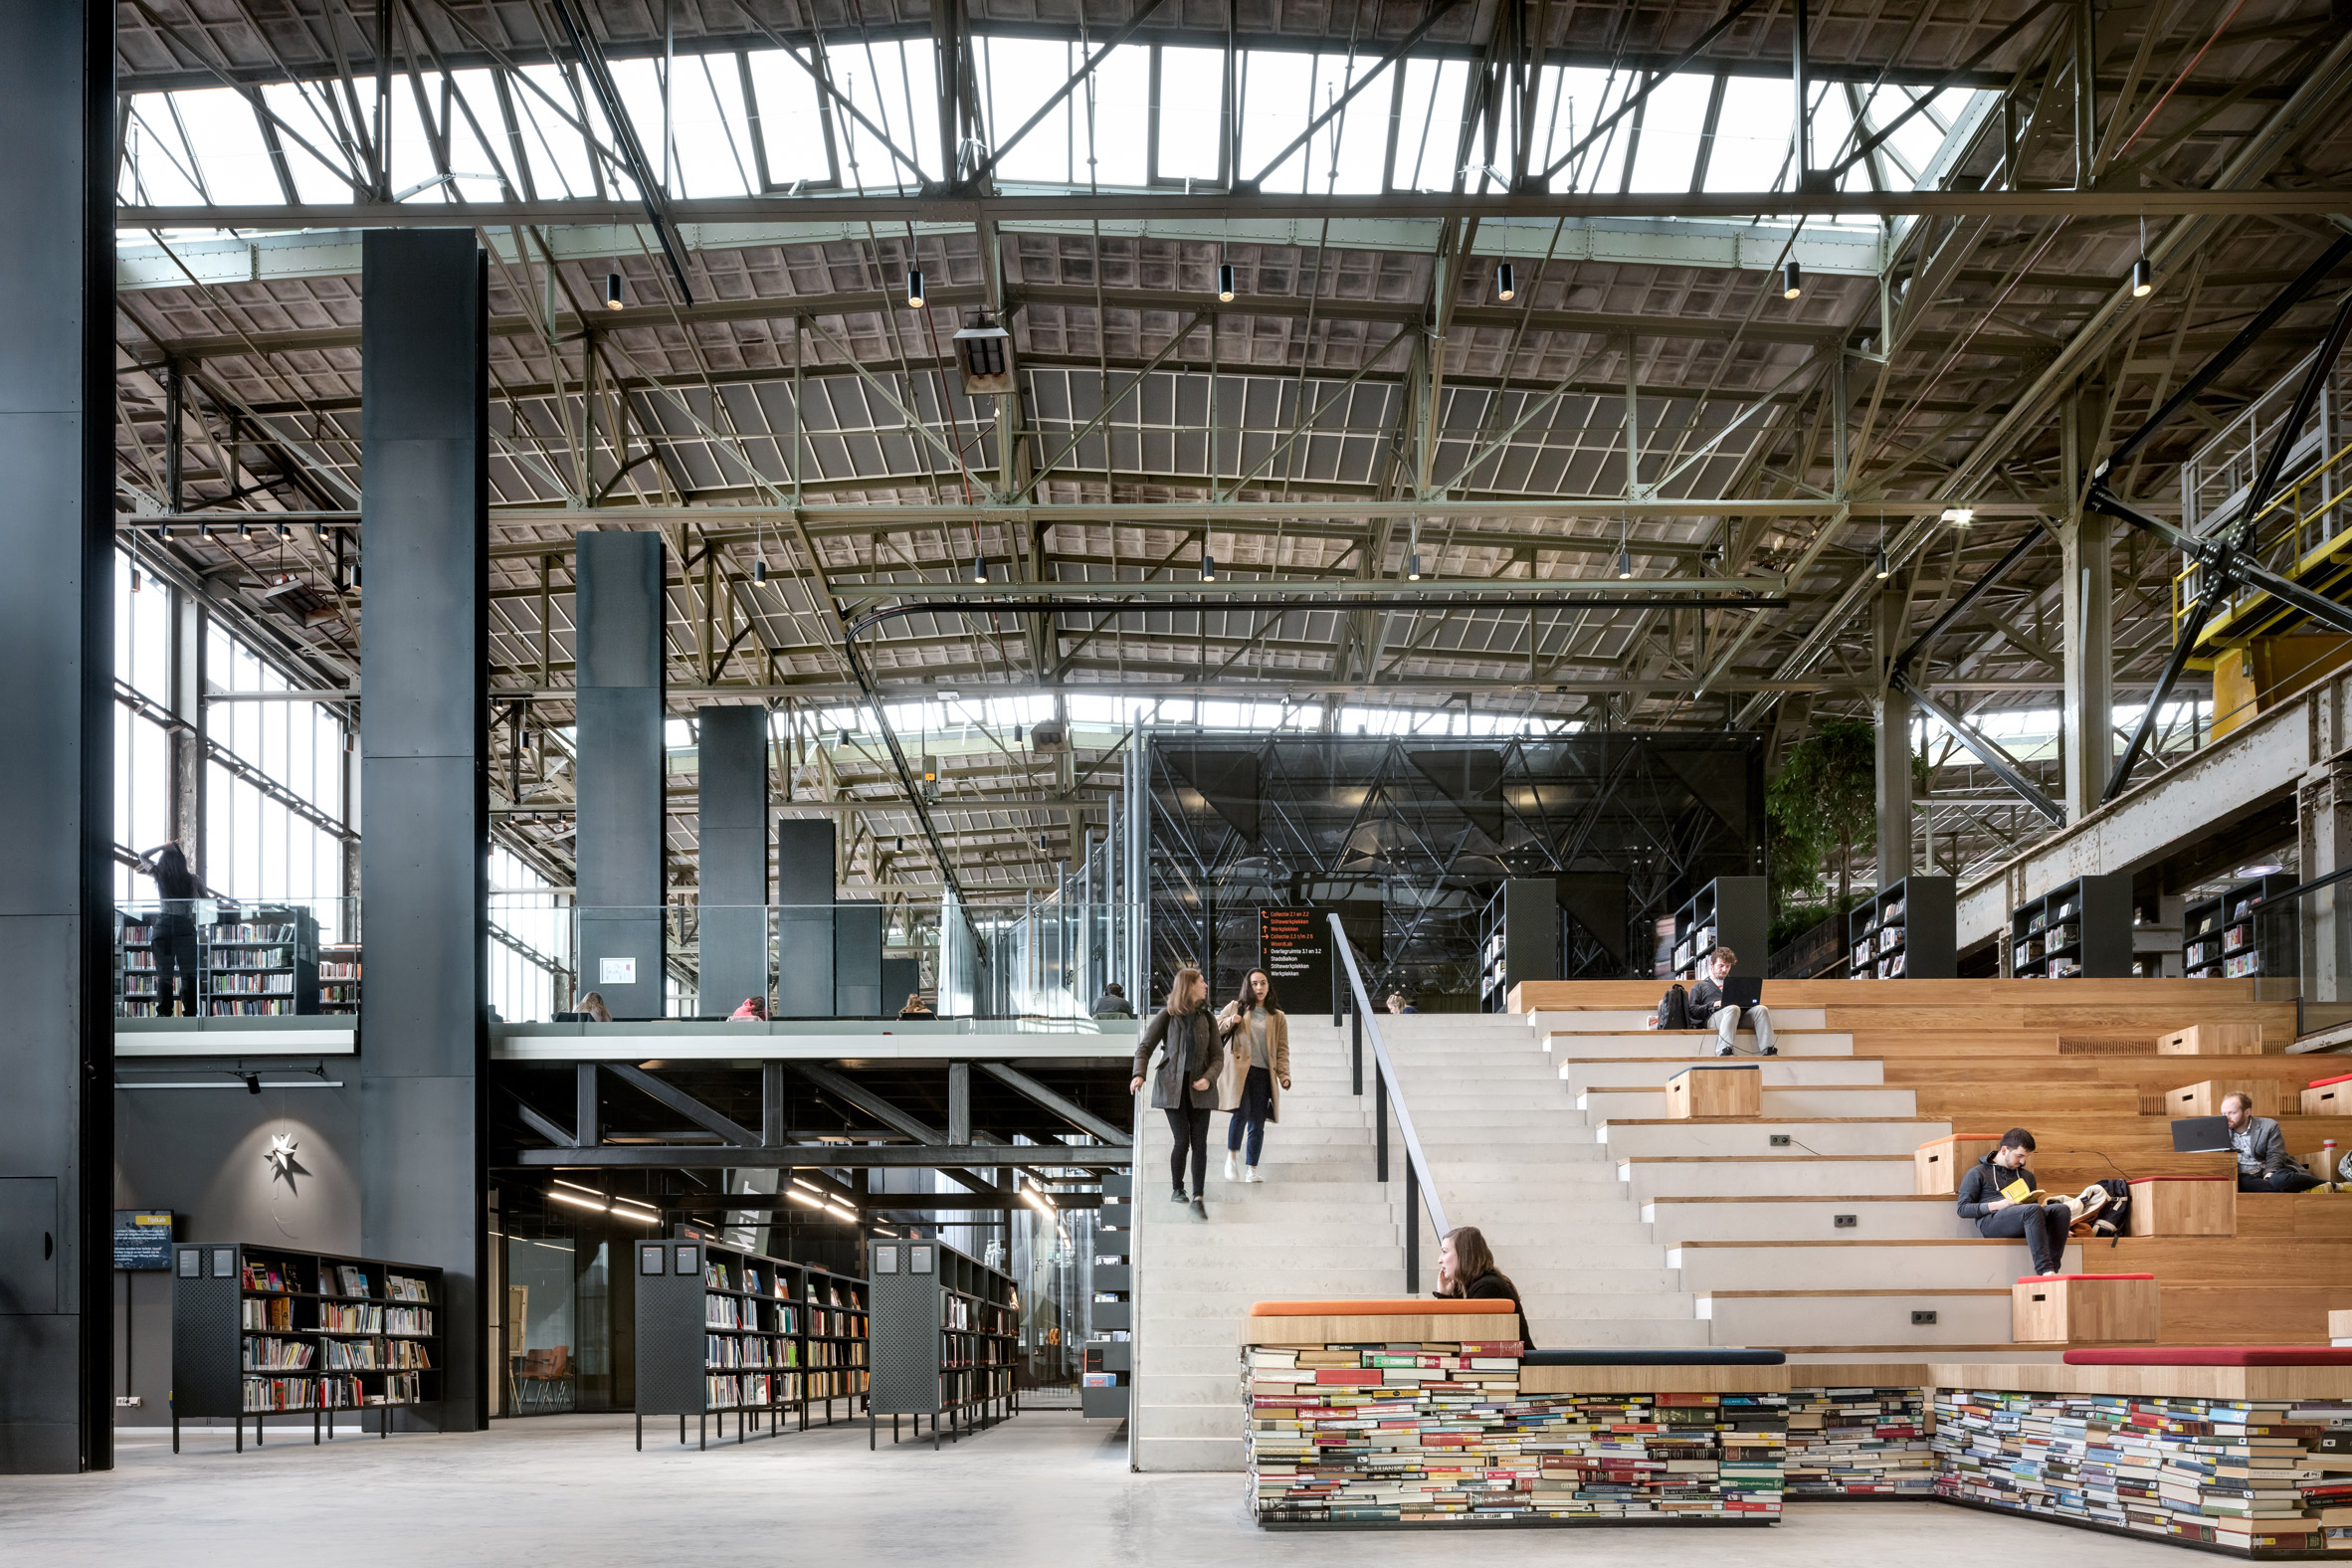 Old warehouse brilliantly transformed into a public library